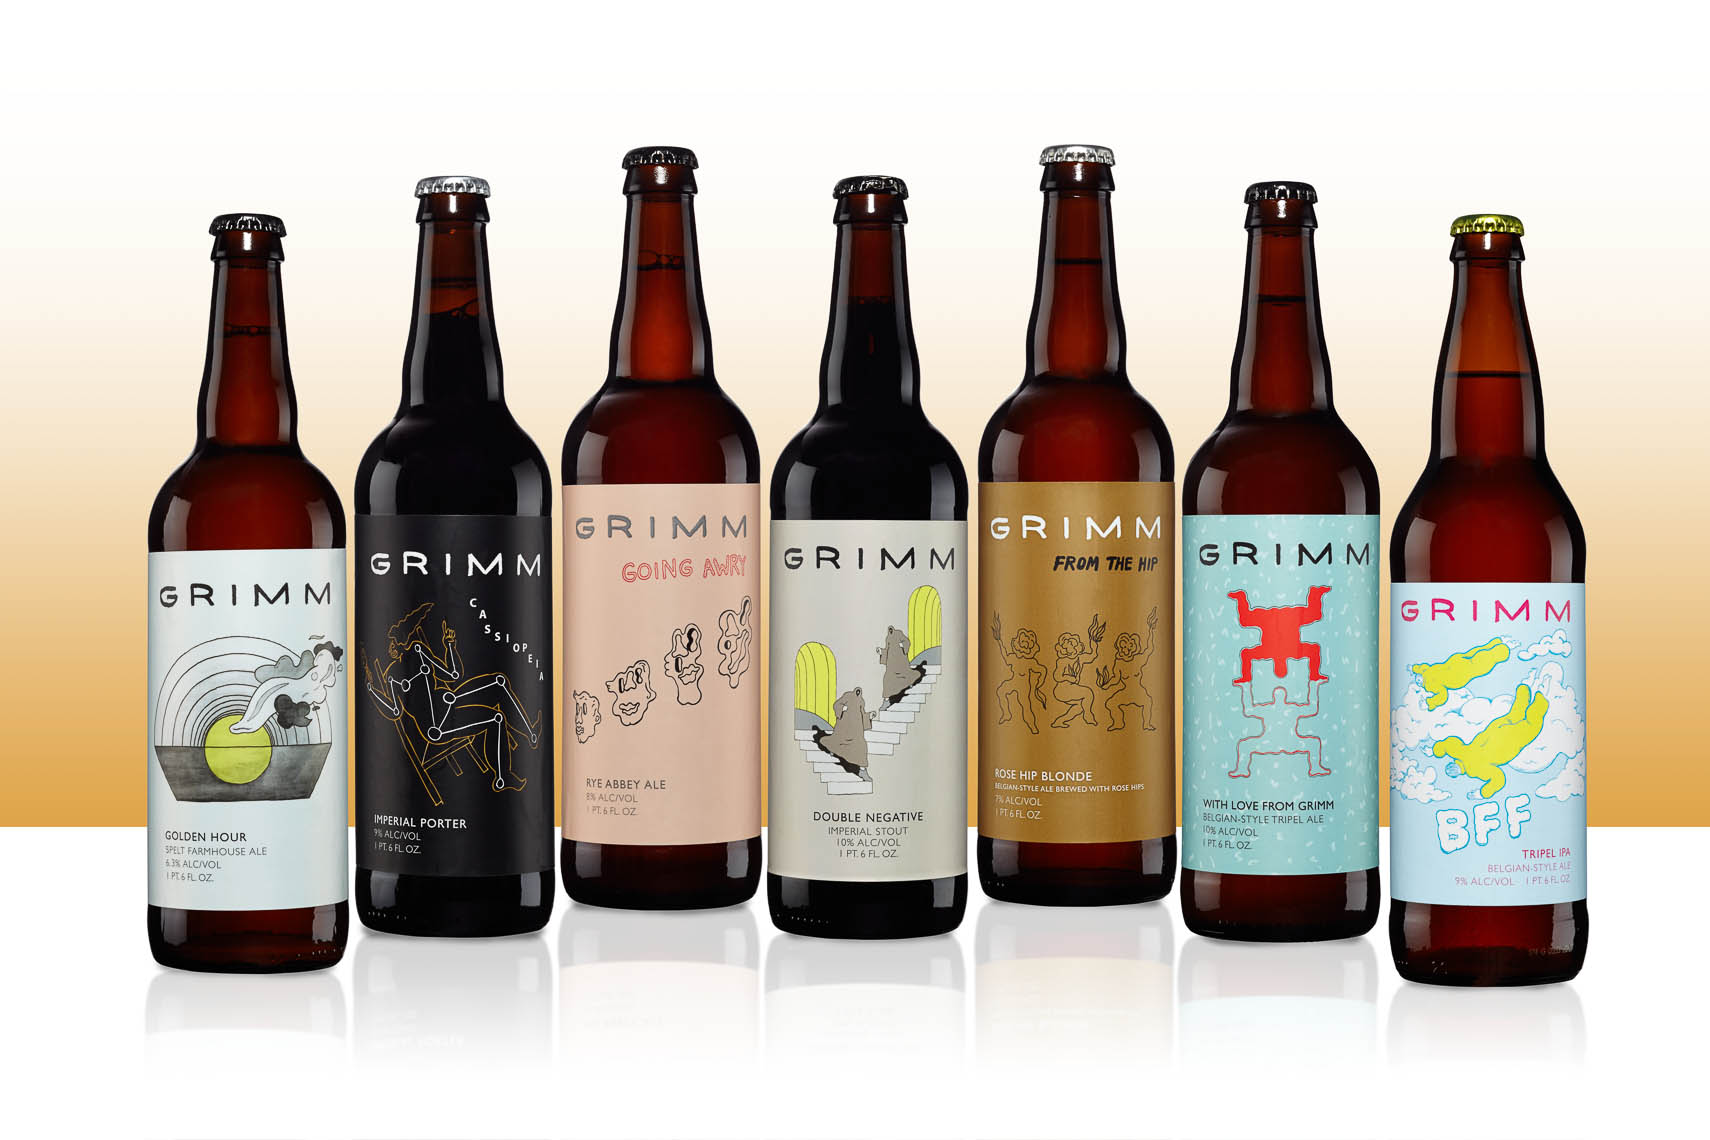 grimm ale product photography on white backgroud